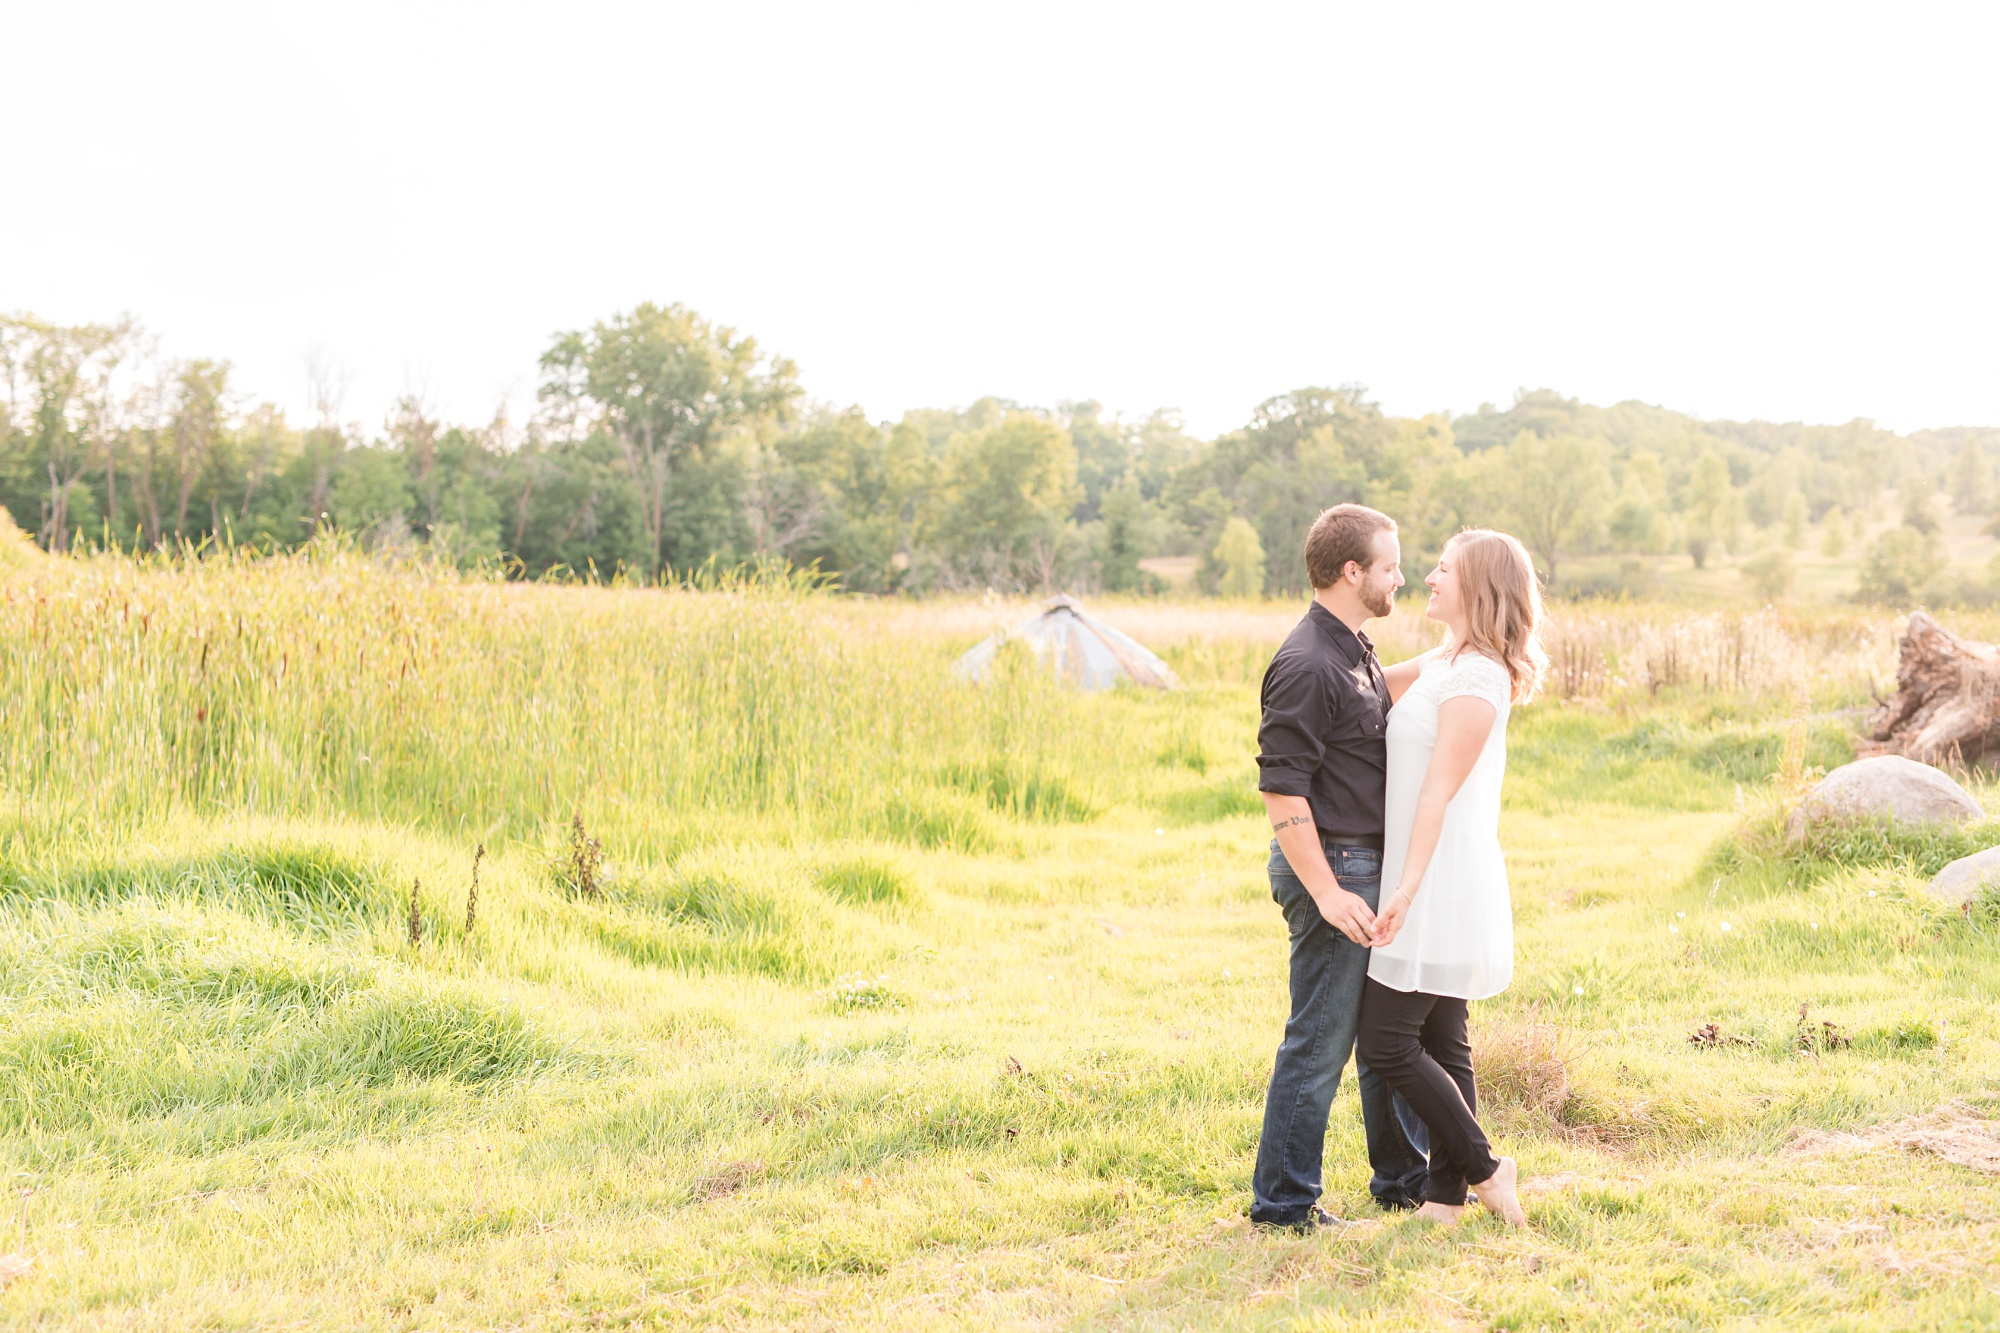 AmberLangerudPhotography_Countryside Engagement Session in Minnesota_3105.jpg